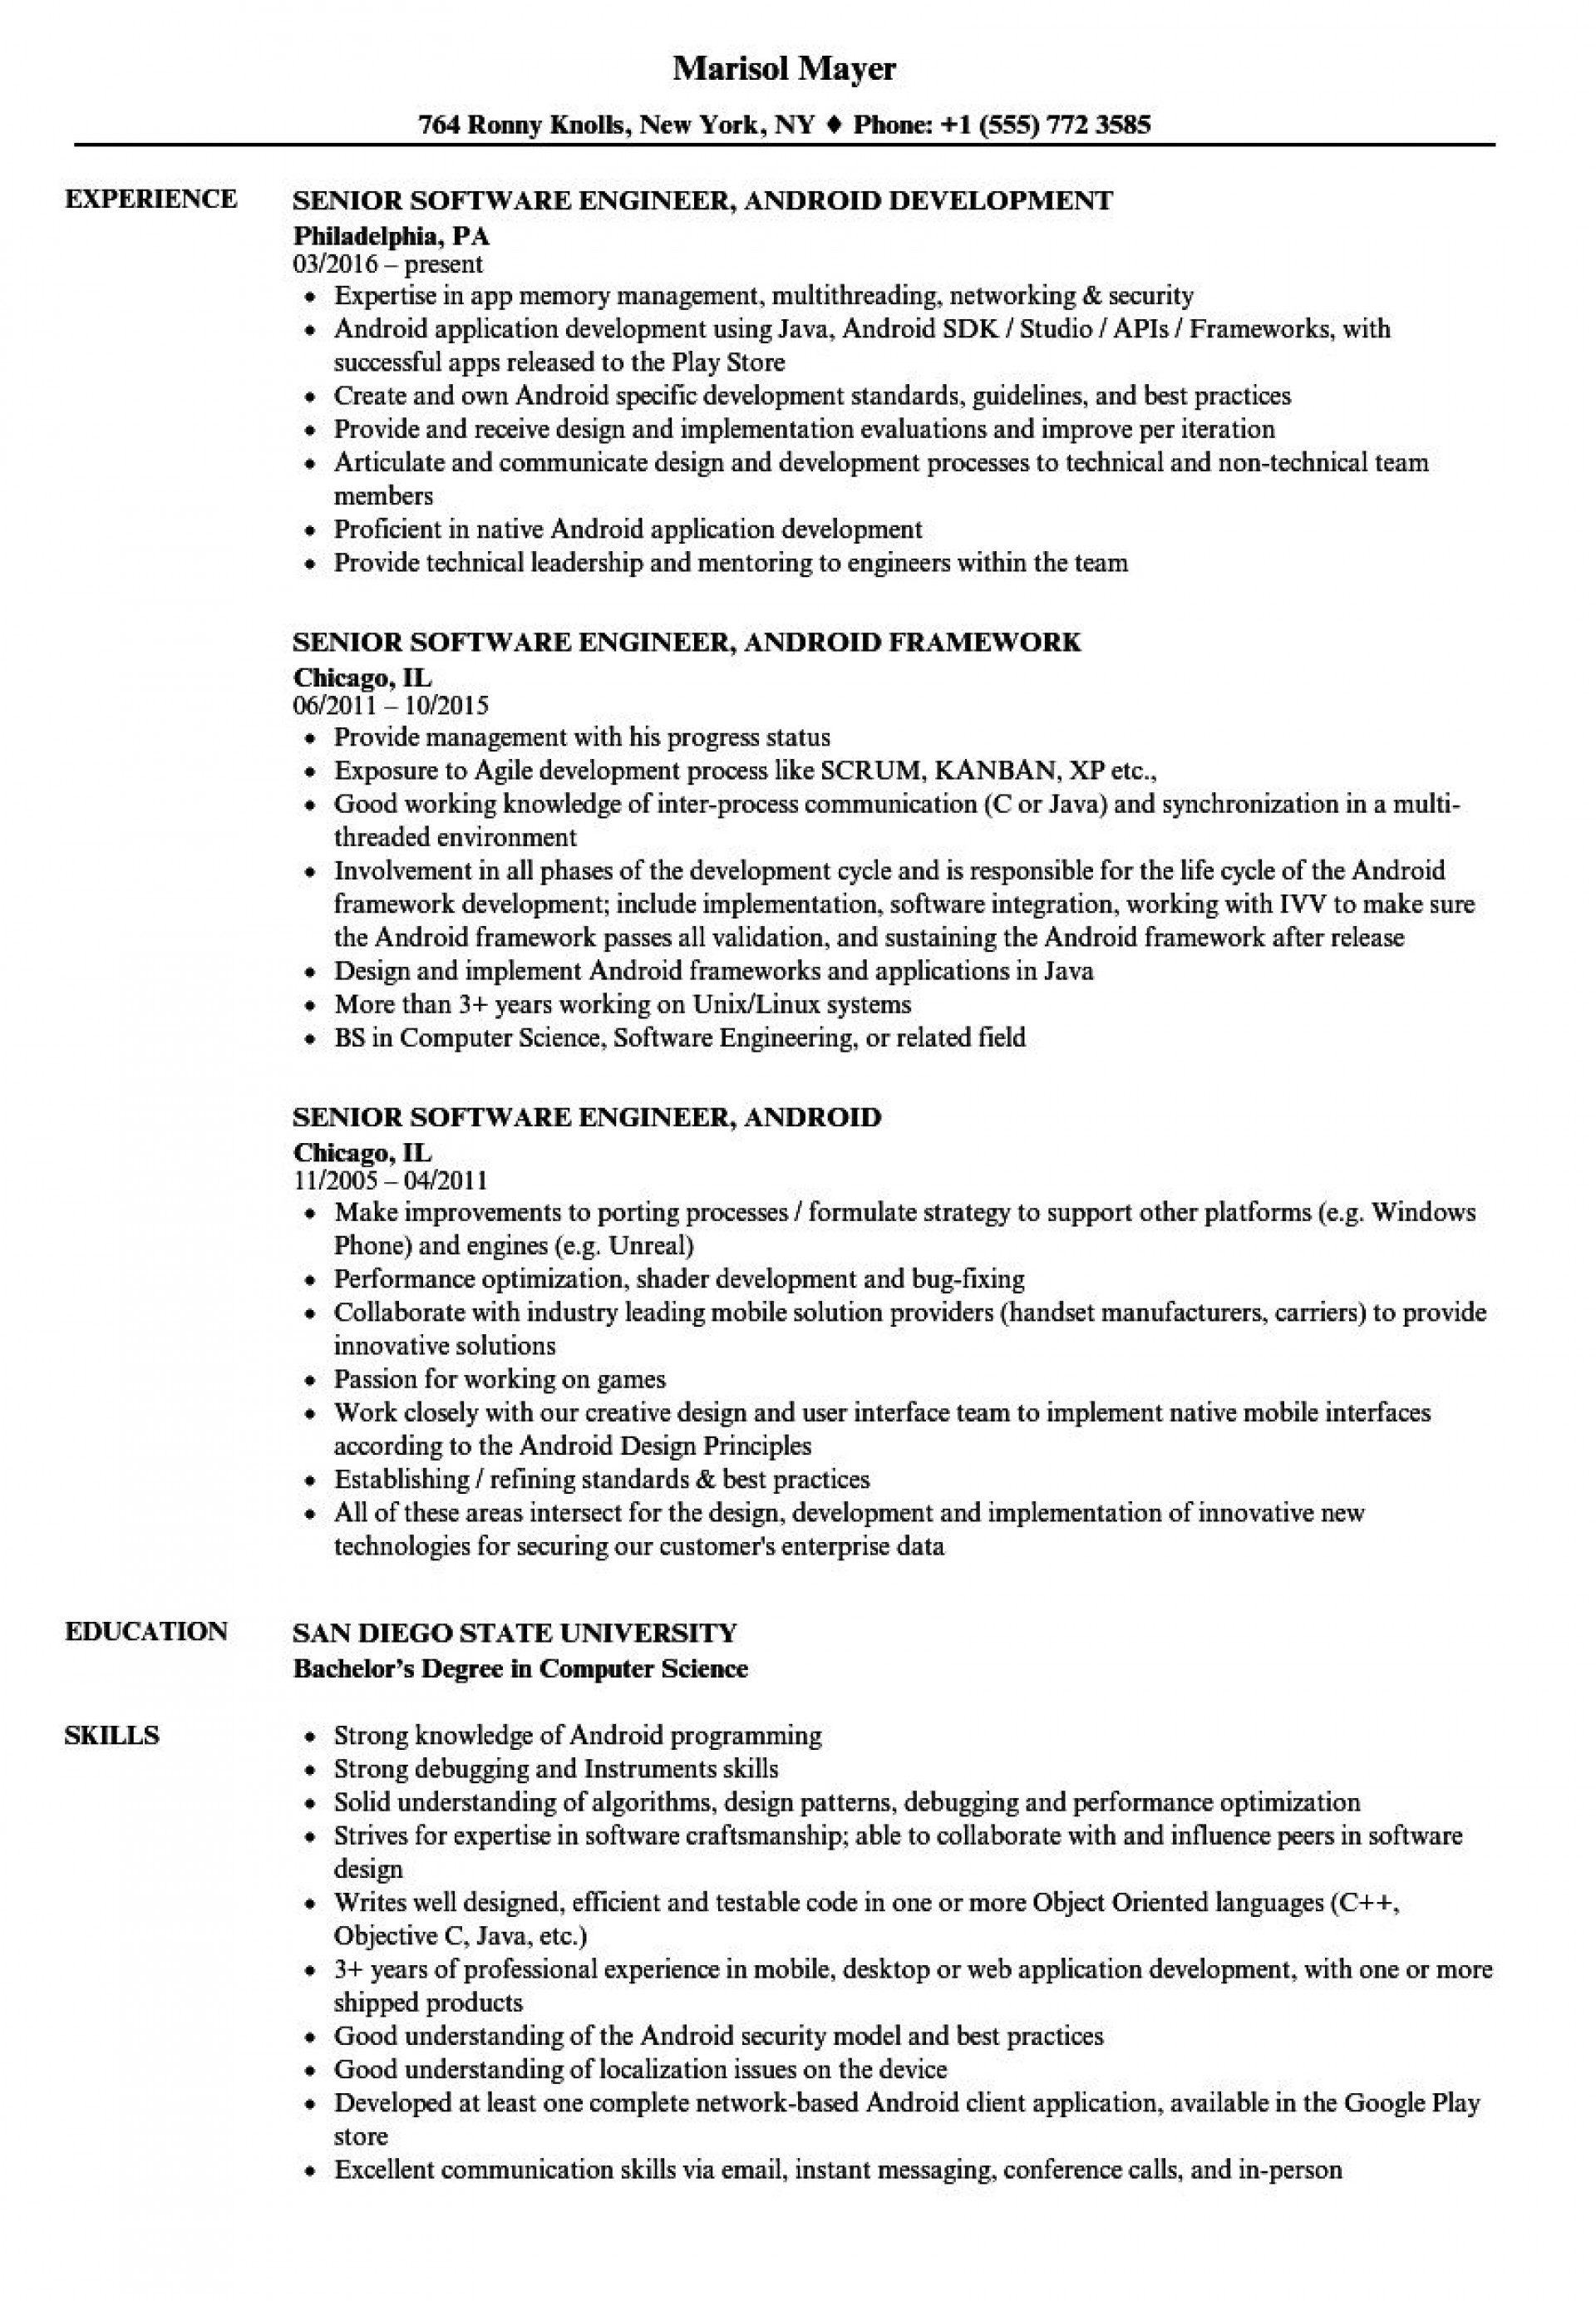 004 Magnificent Software Engineer Resume Template Inspiration  Word Format Free Download Microsoft1920